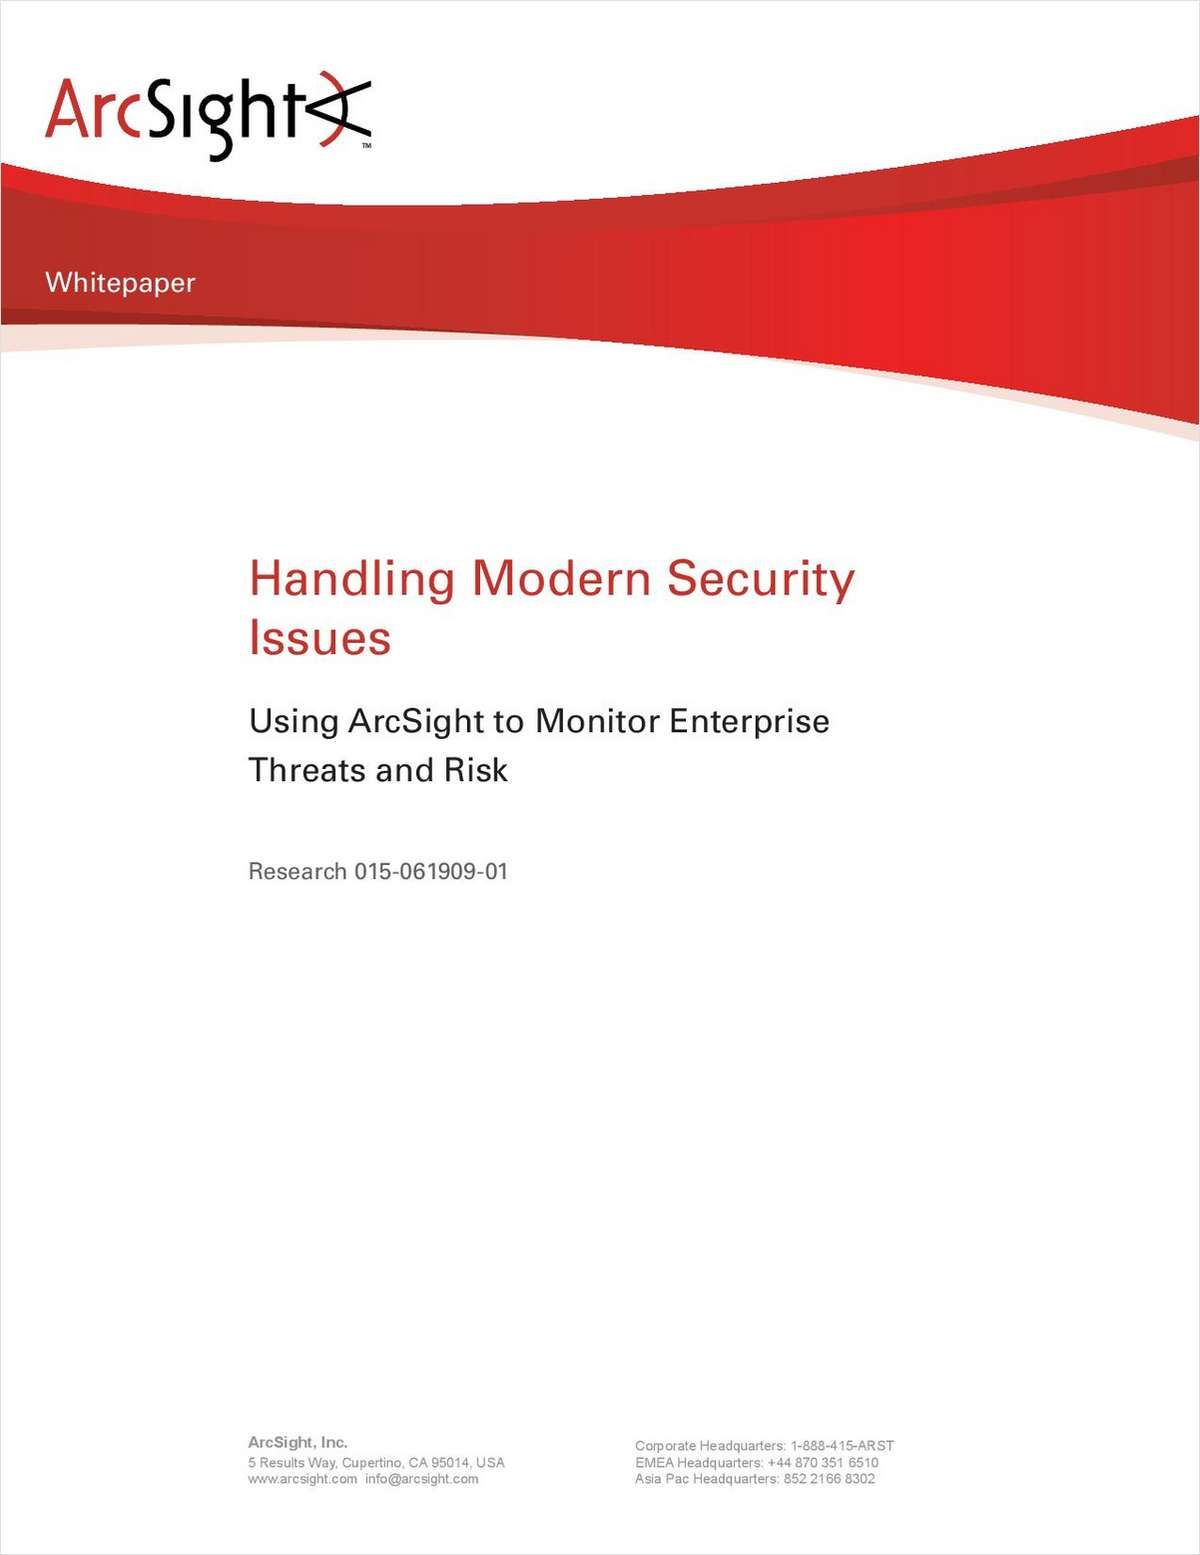 Handling Modern Security Issues - The Trusted Insider